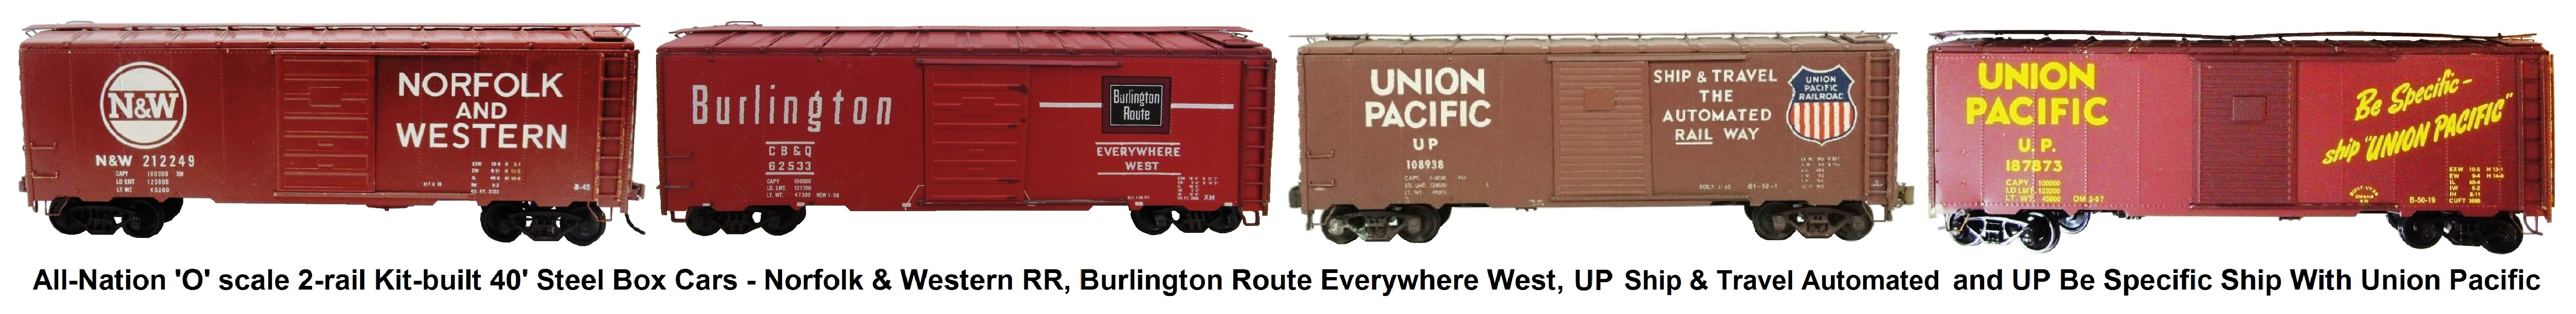 All-Nation 'O' scale 40' Steel Box Cars Kit-built into Norfolk & Western RR, Burlington Route Everywhere West, NYC & St. L Nickel Plate Road and UP Be Specific Ship With Union Pacific Liveries